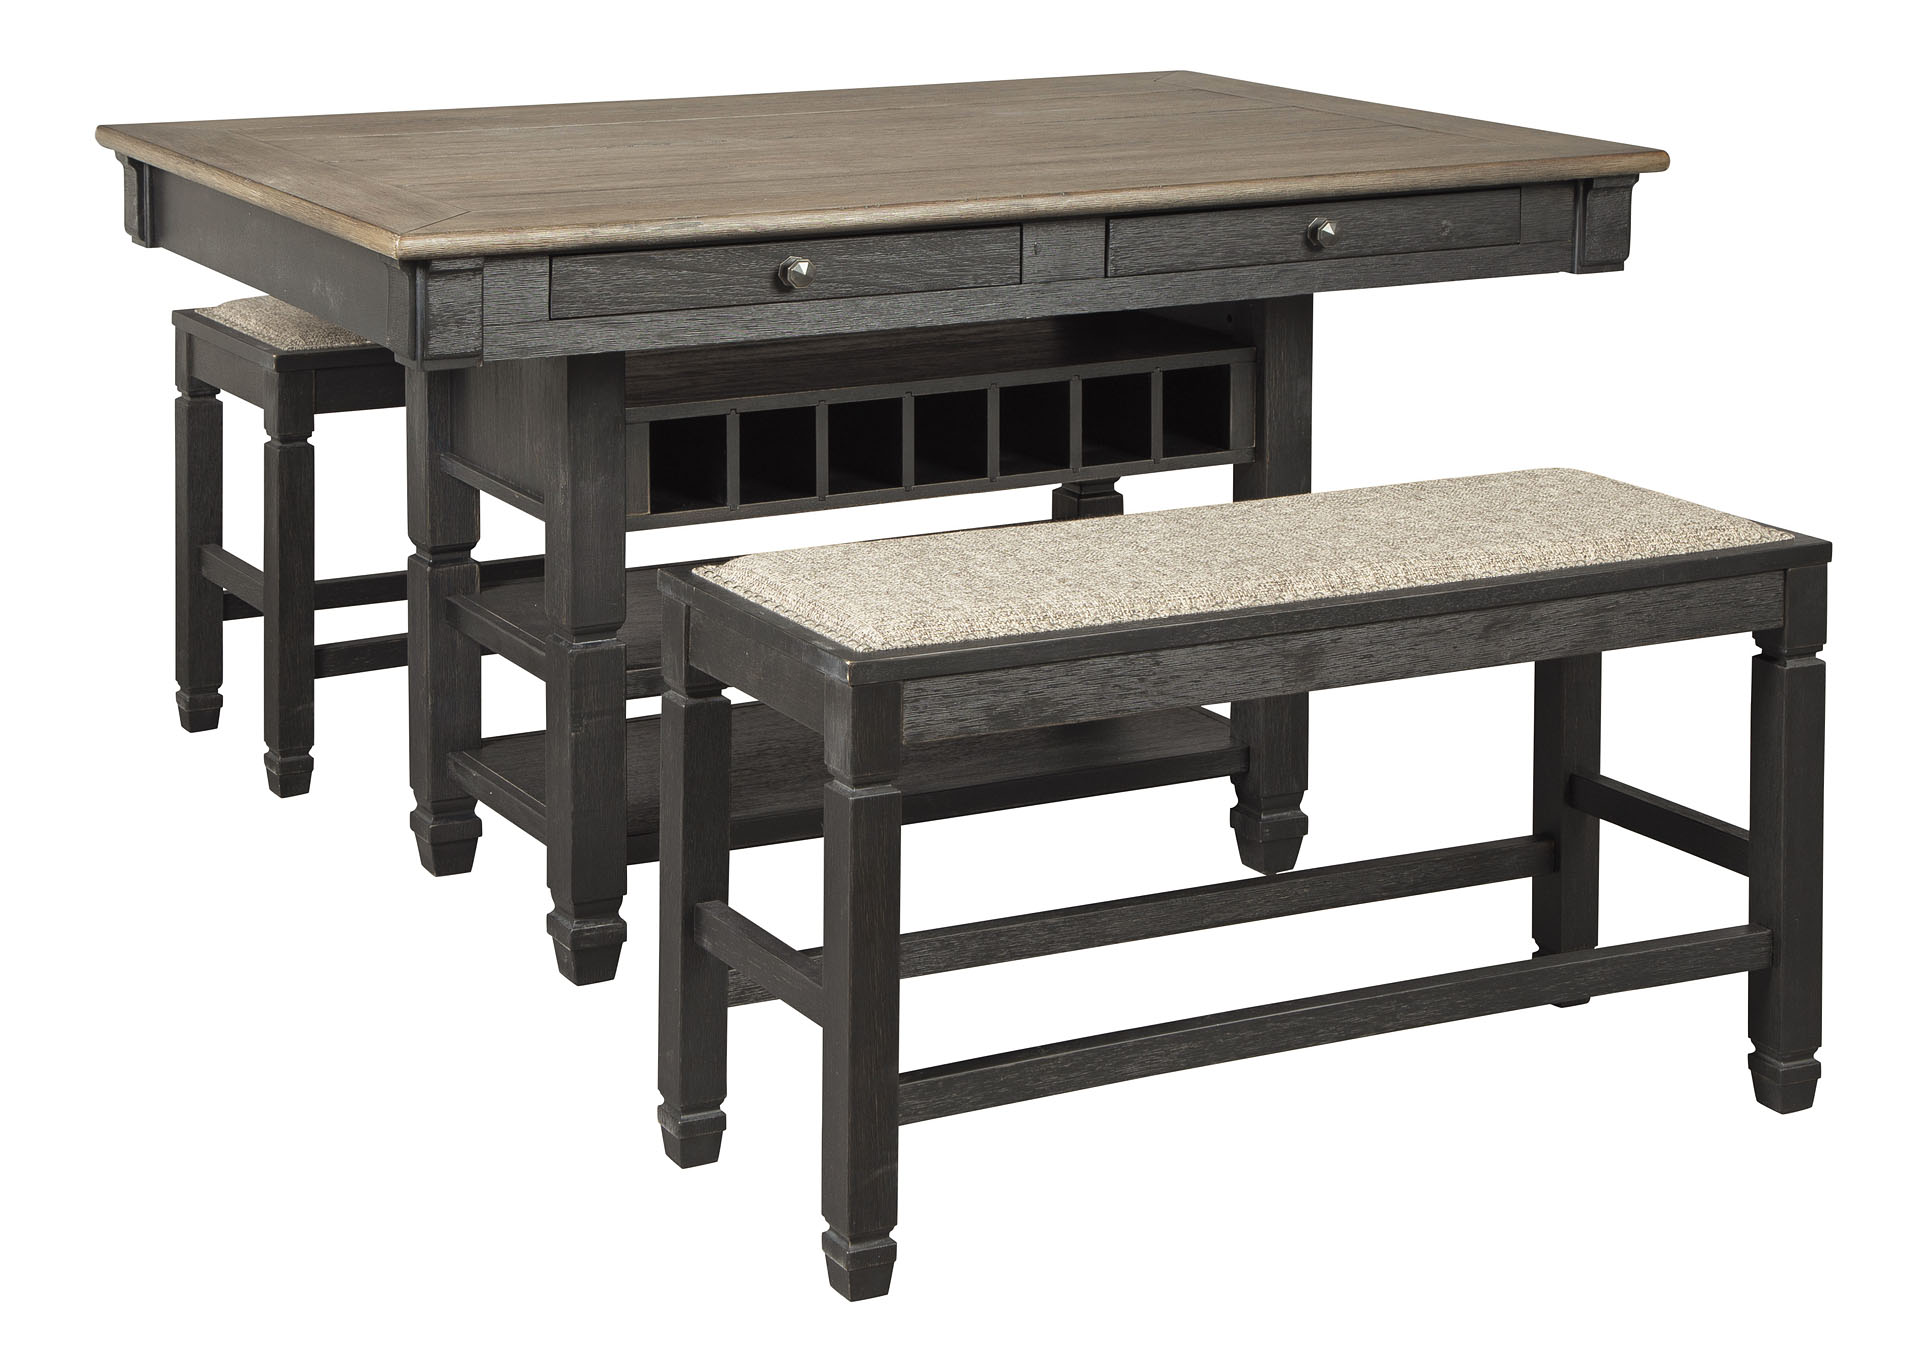 Tyler Creek Counter Height Dining Table and 2 Benches